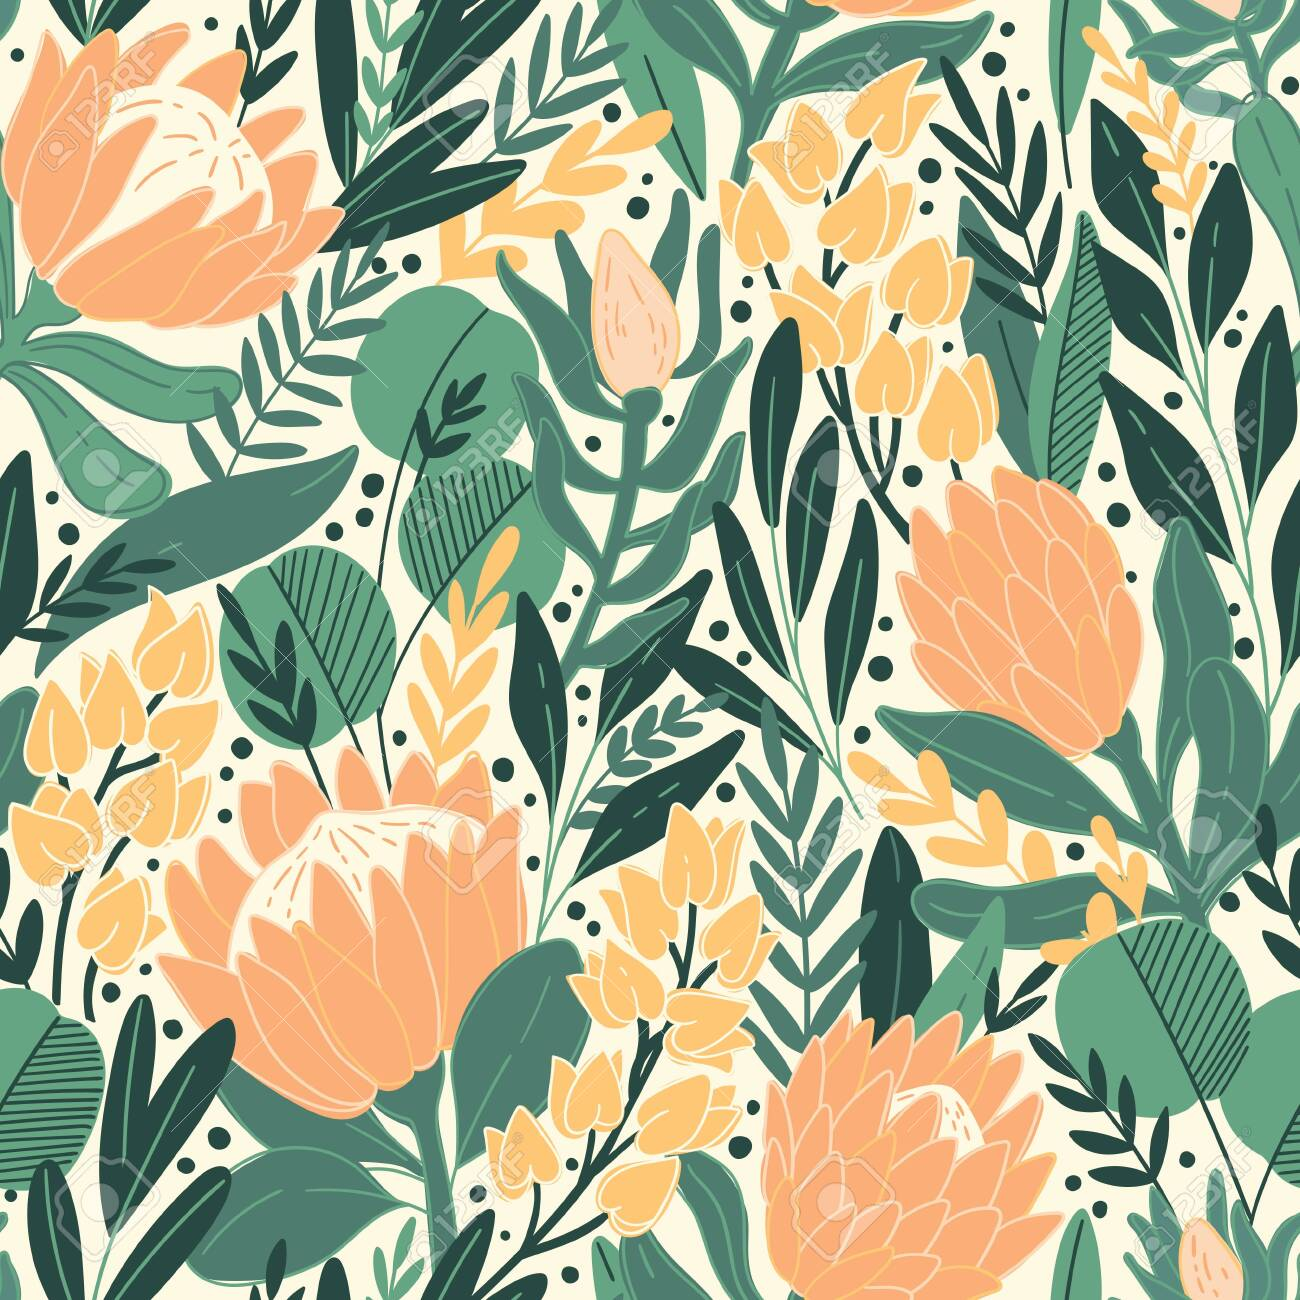 Protea and eucalyptus leaves pattern. Seamless motif for wrapping, wallpaper, fabric, decoration print. Vector illustration - 143512532